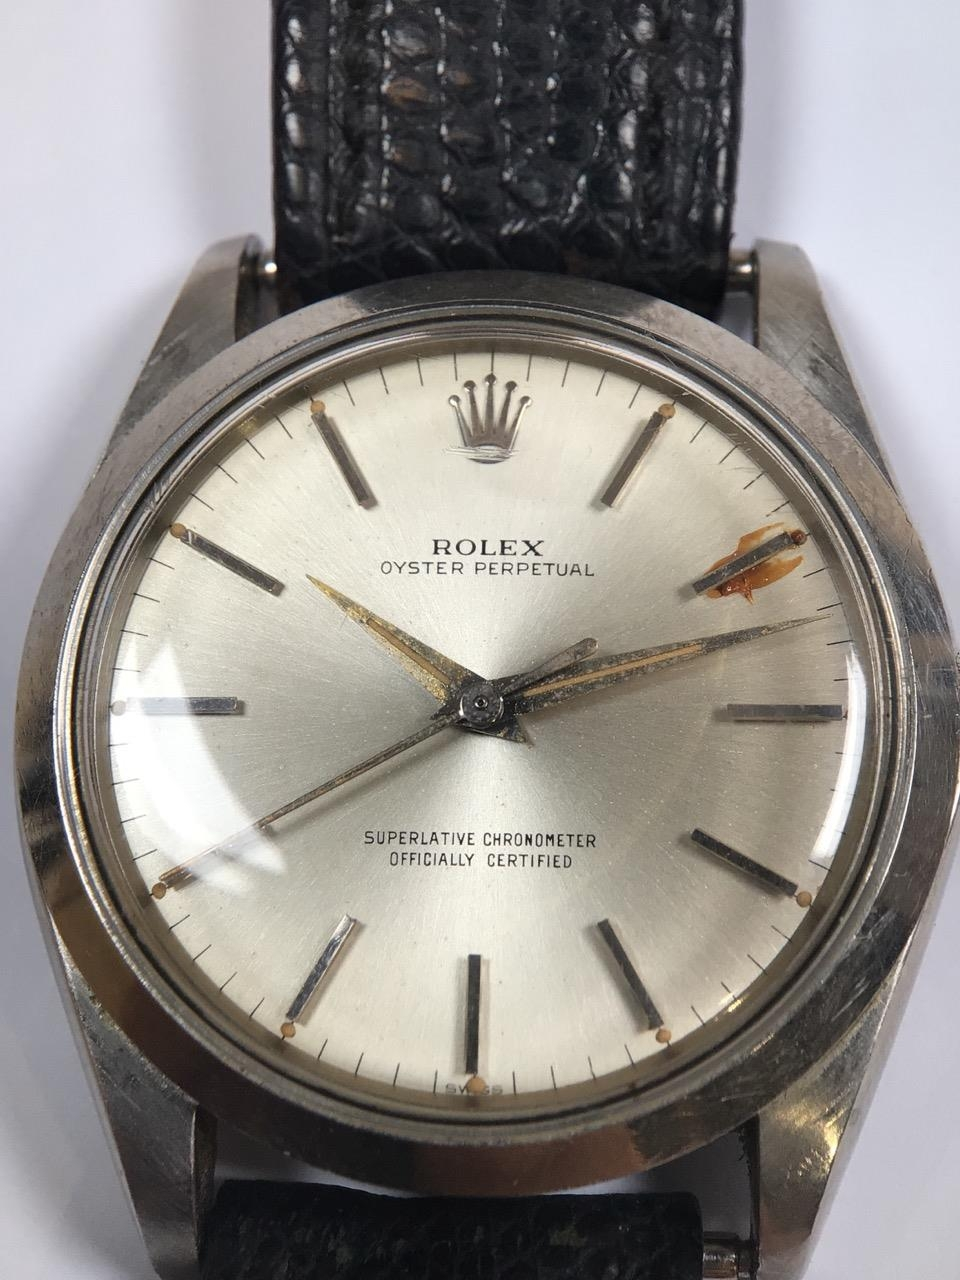 Rolex on a roll